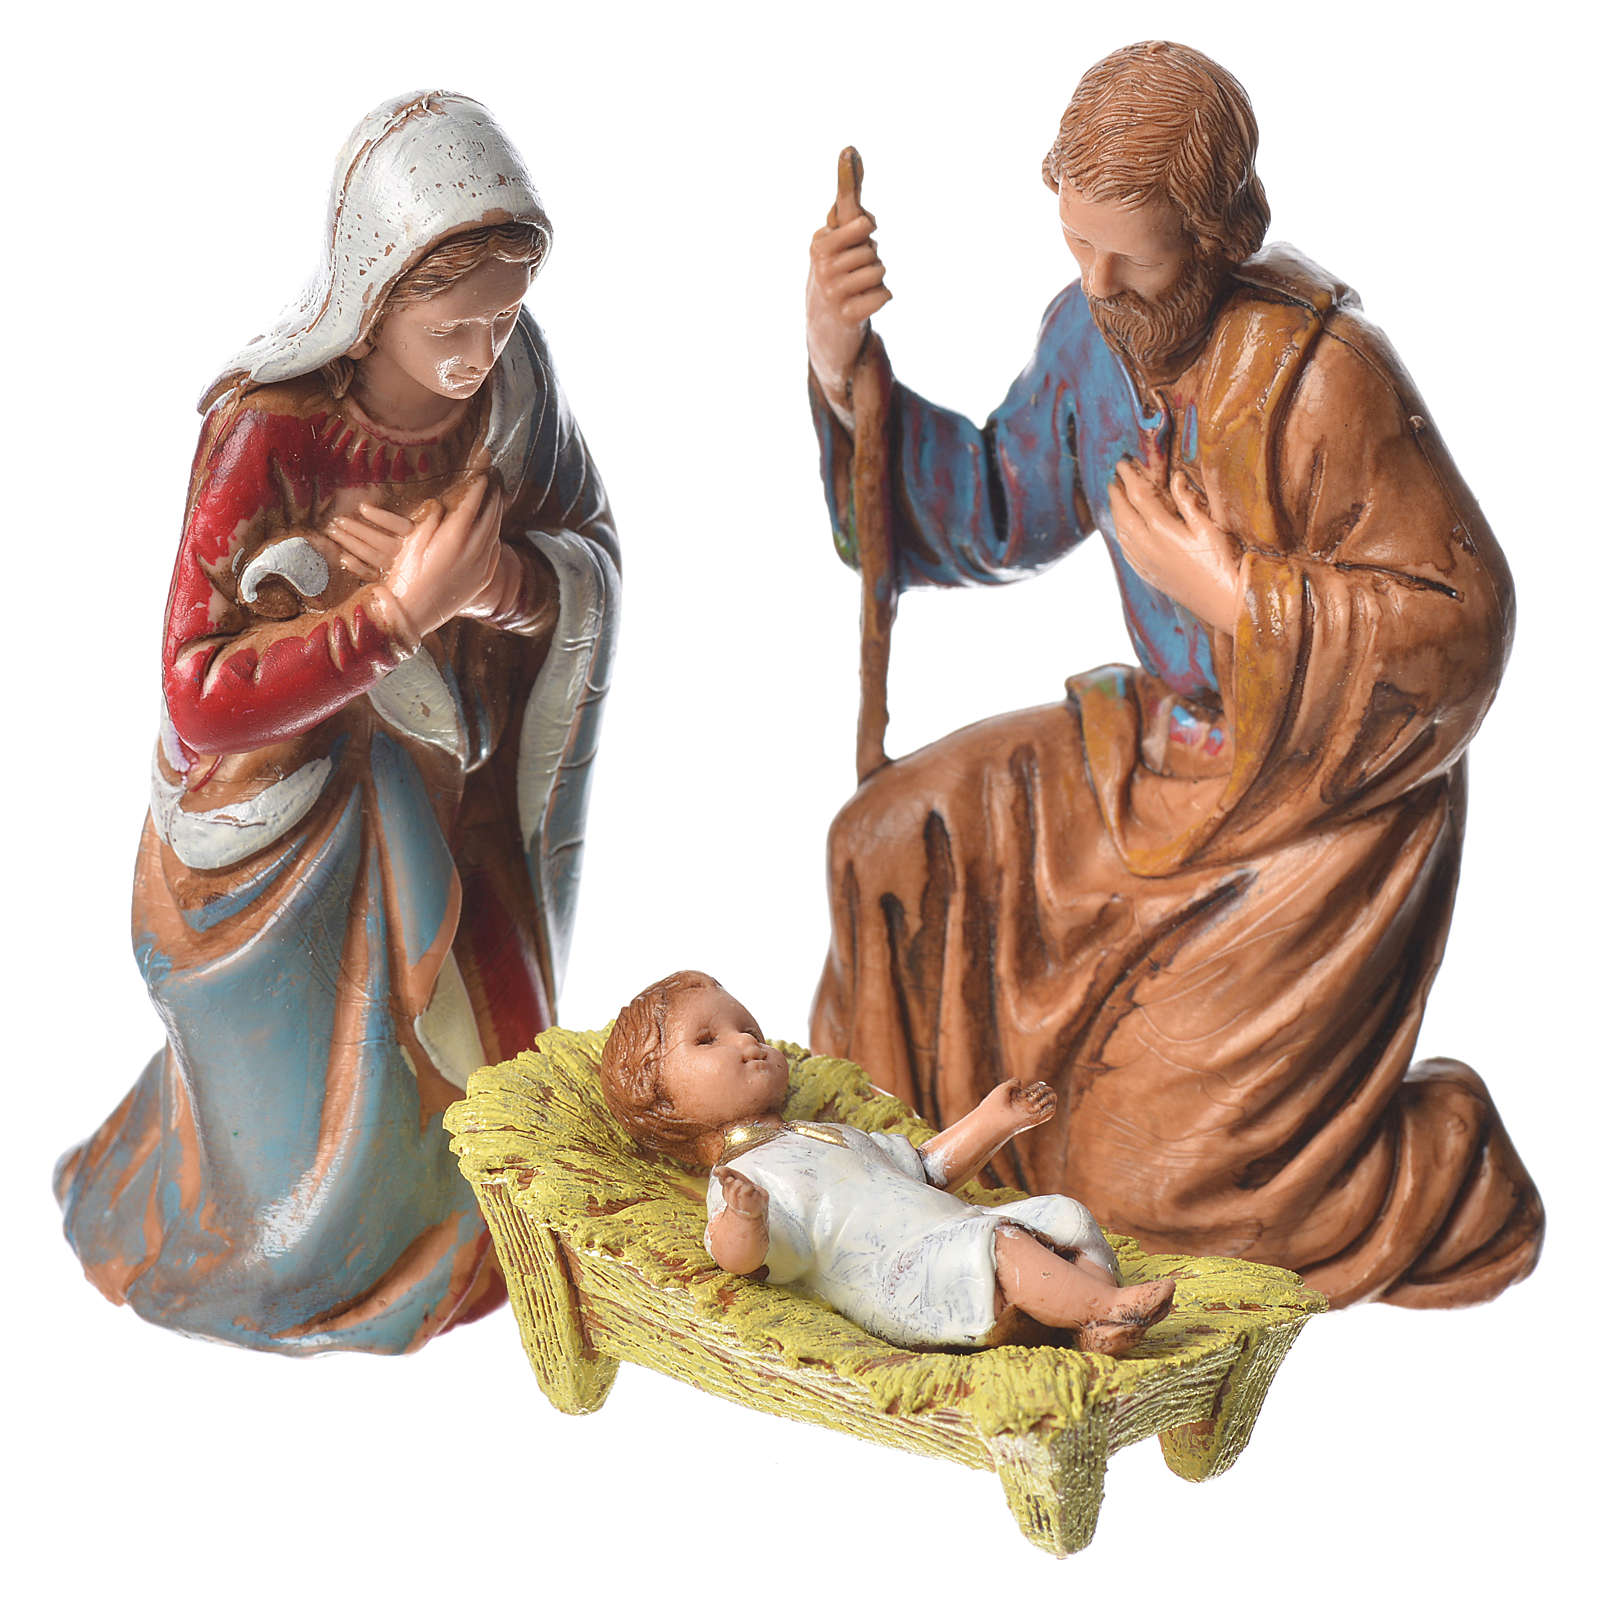 Nativity Scene figurines by Moranduzzo 8cm, 6 pieces 4